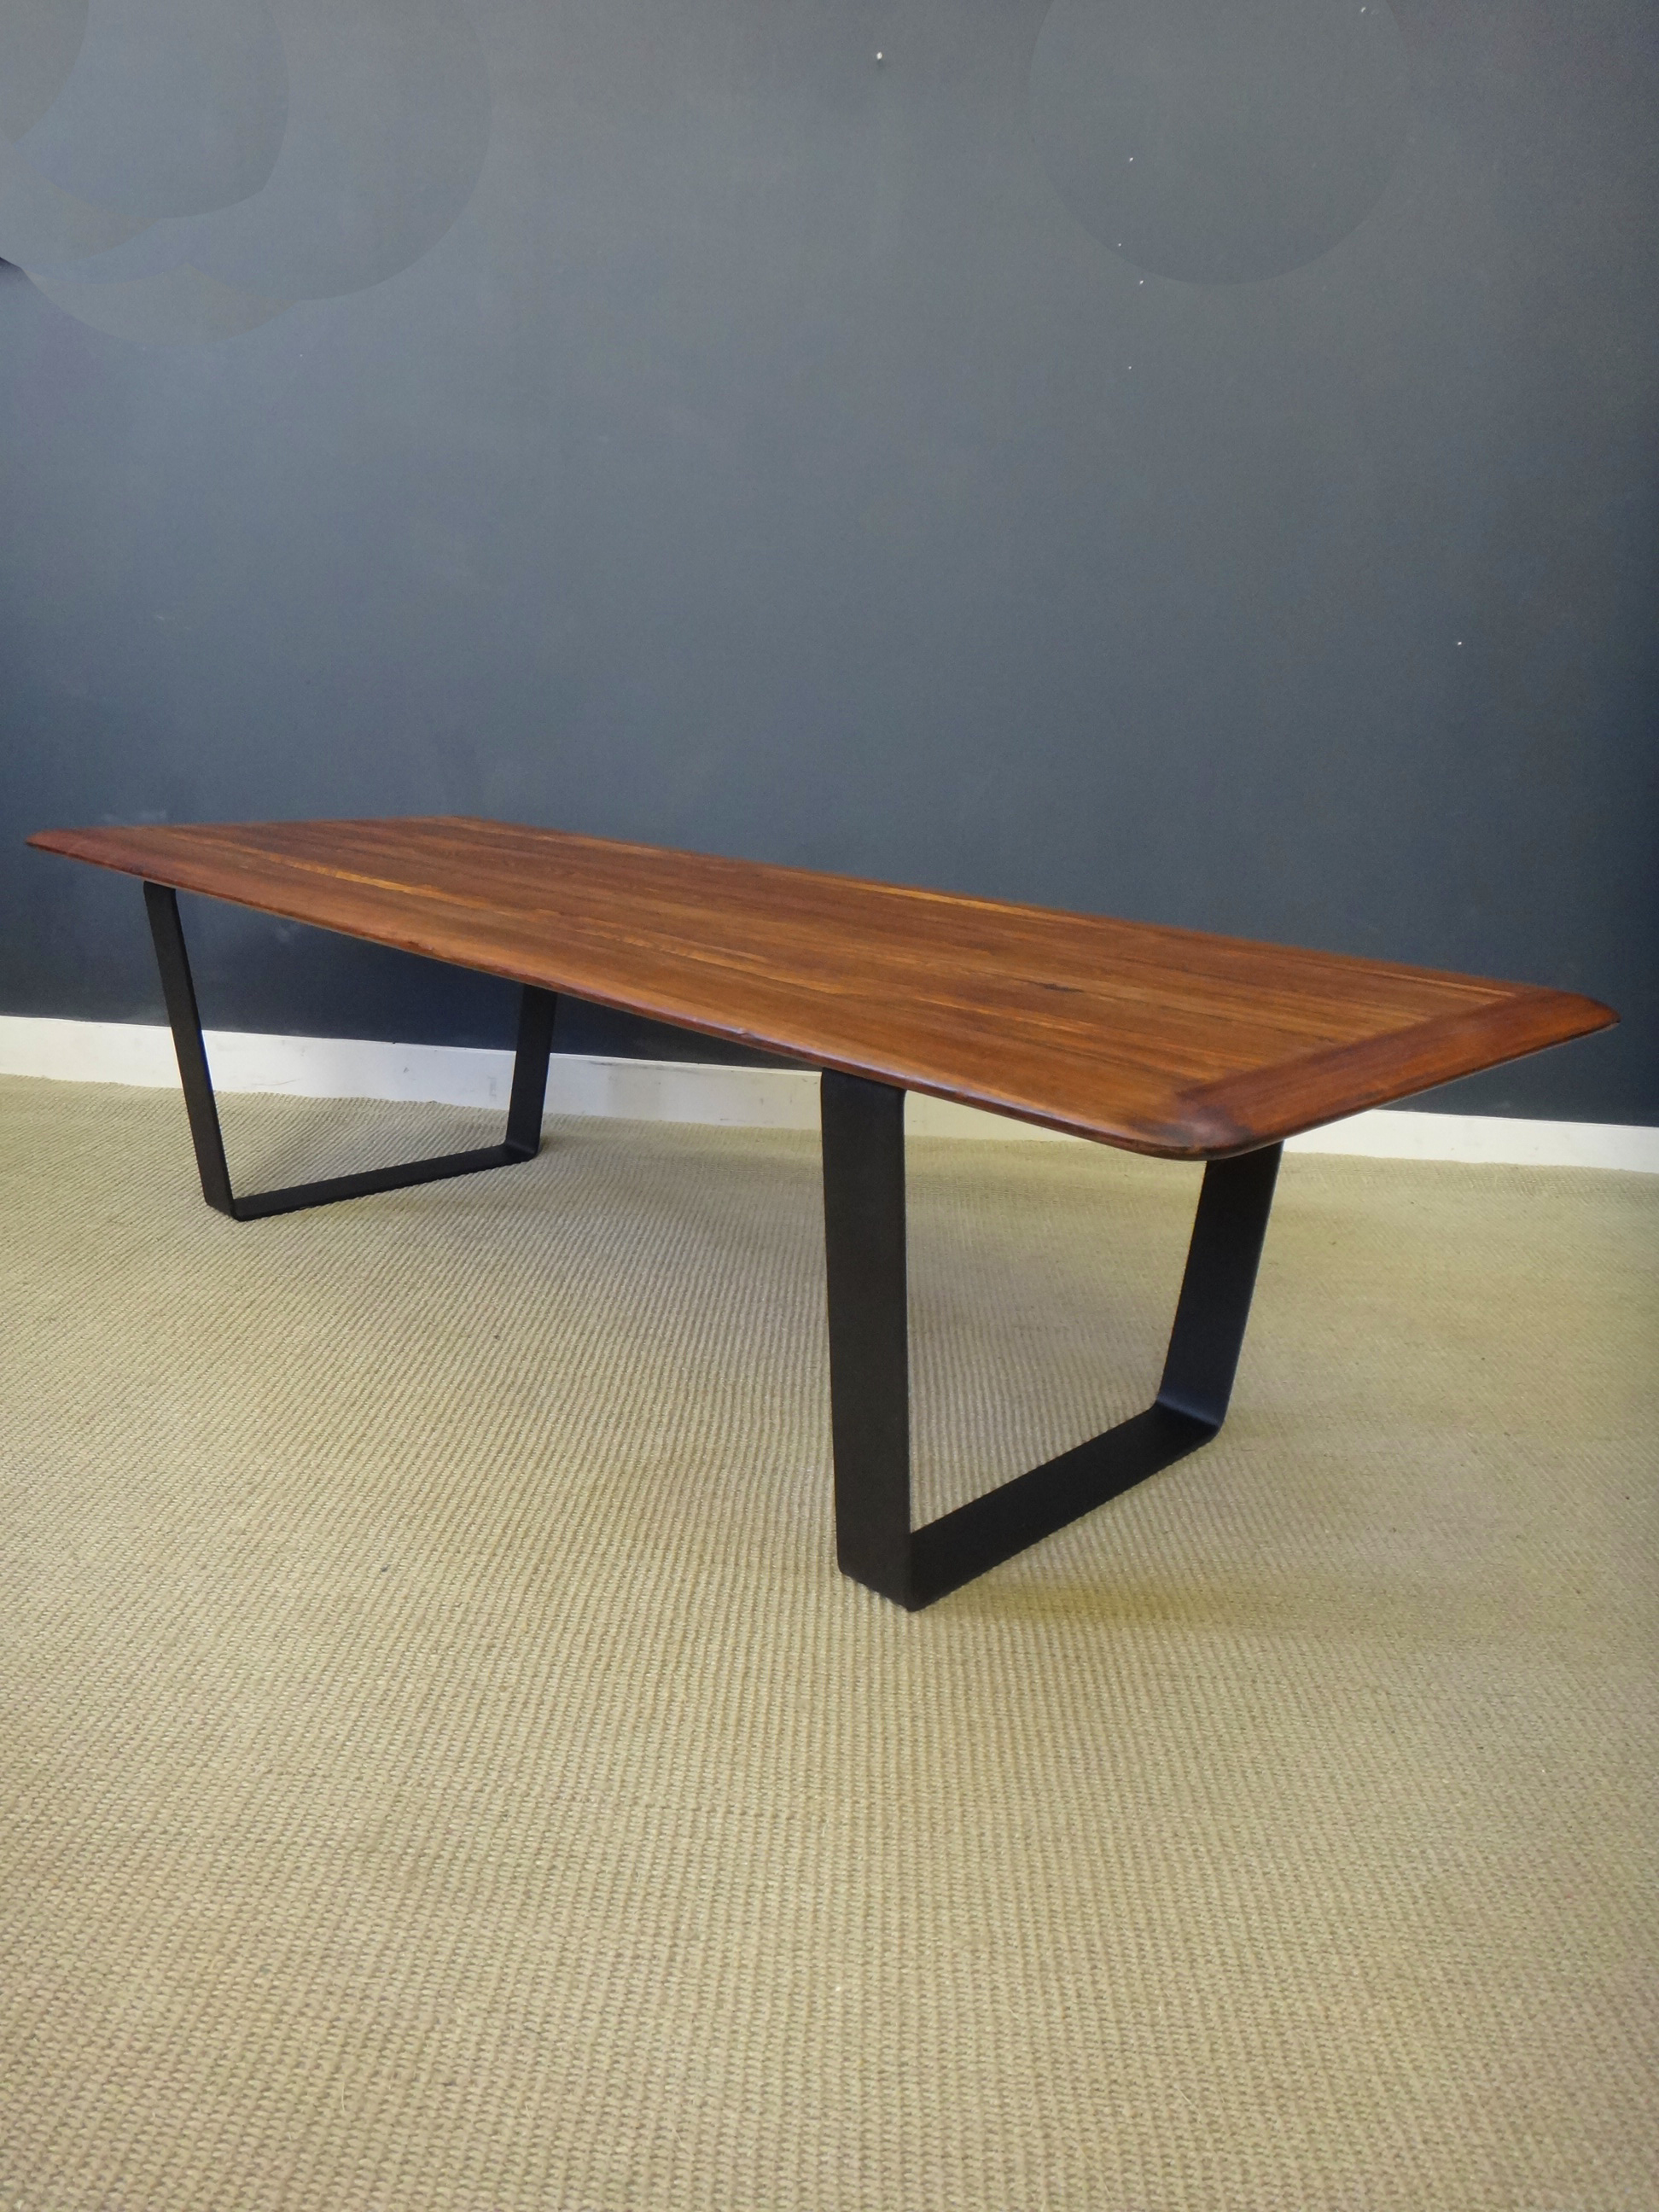 L.Pontoppidan Rosewood Coffee Table or Bench